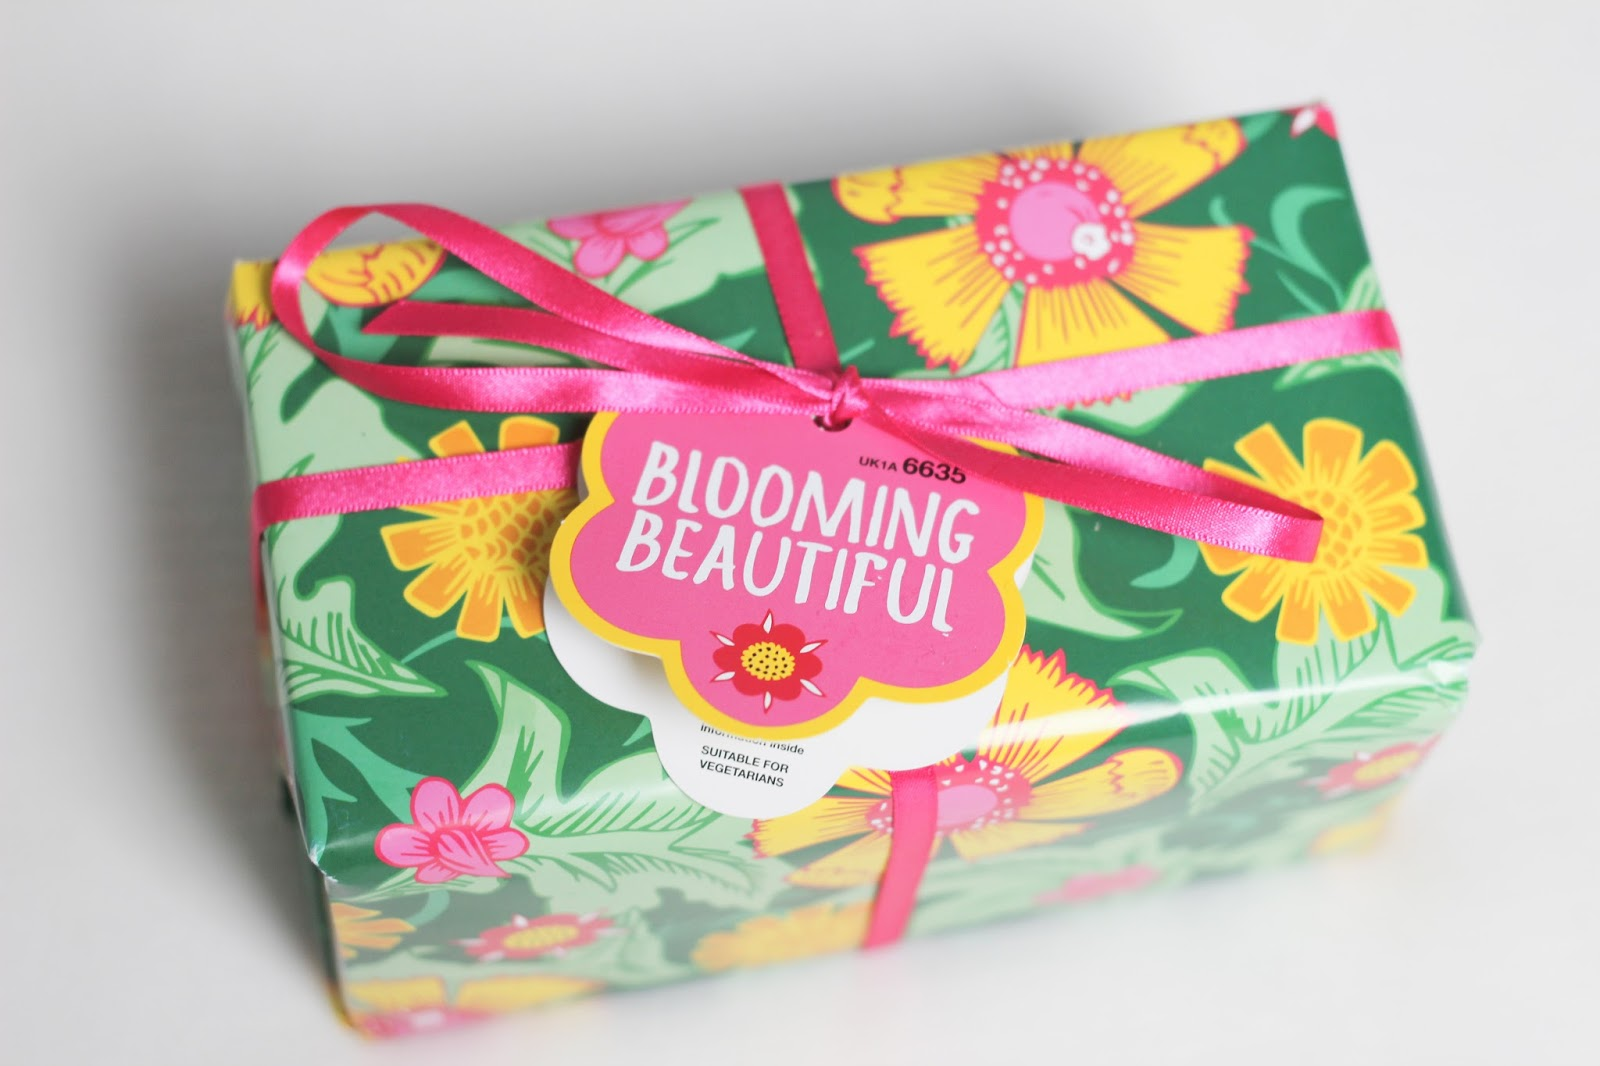 LUSH Blooming Beautiful Gift Set